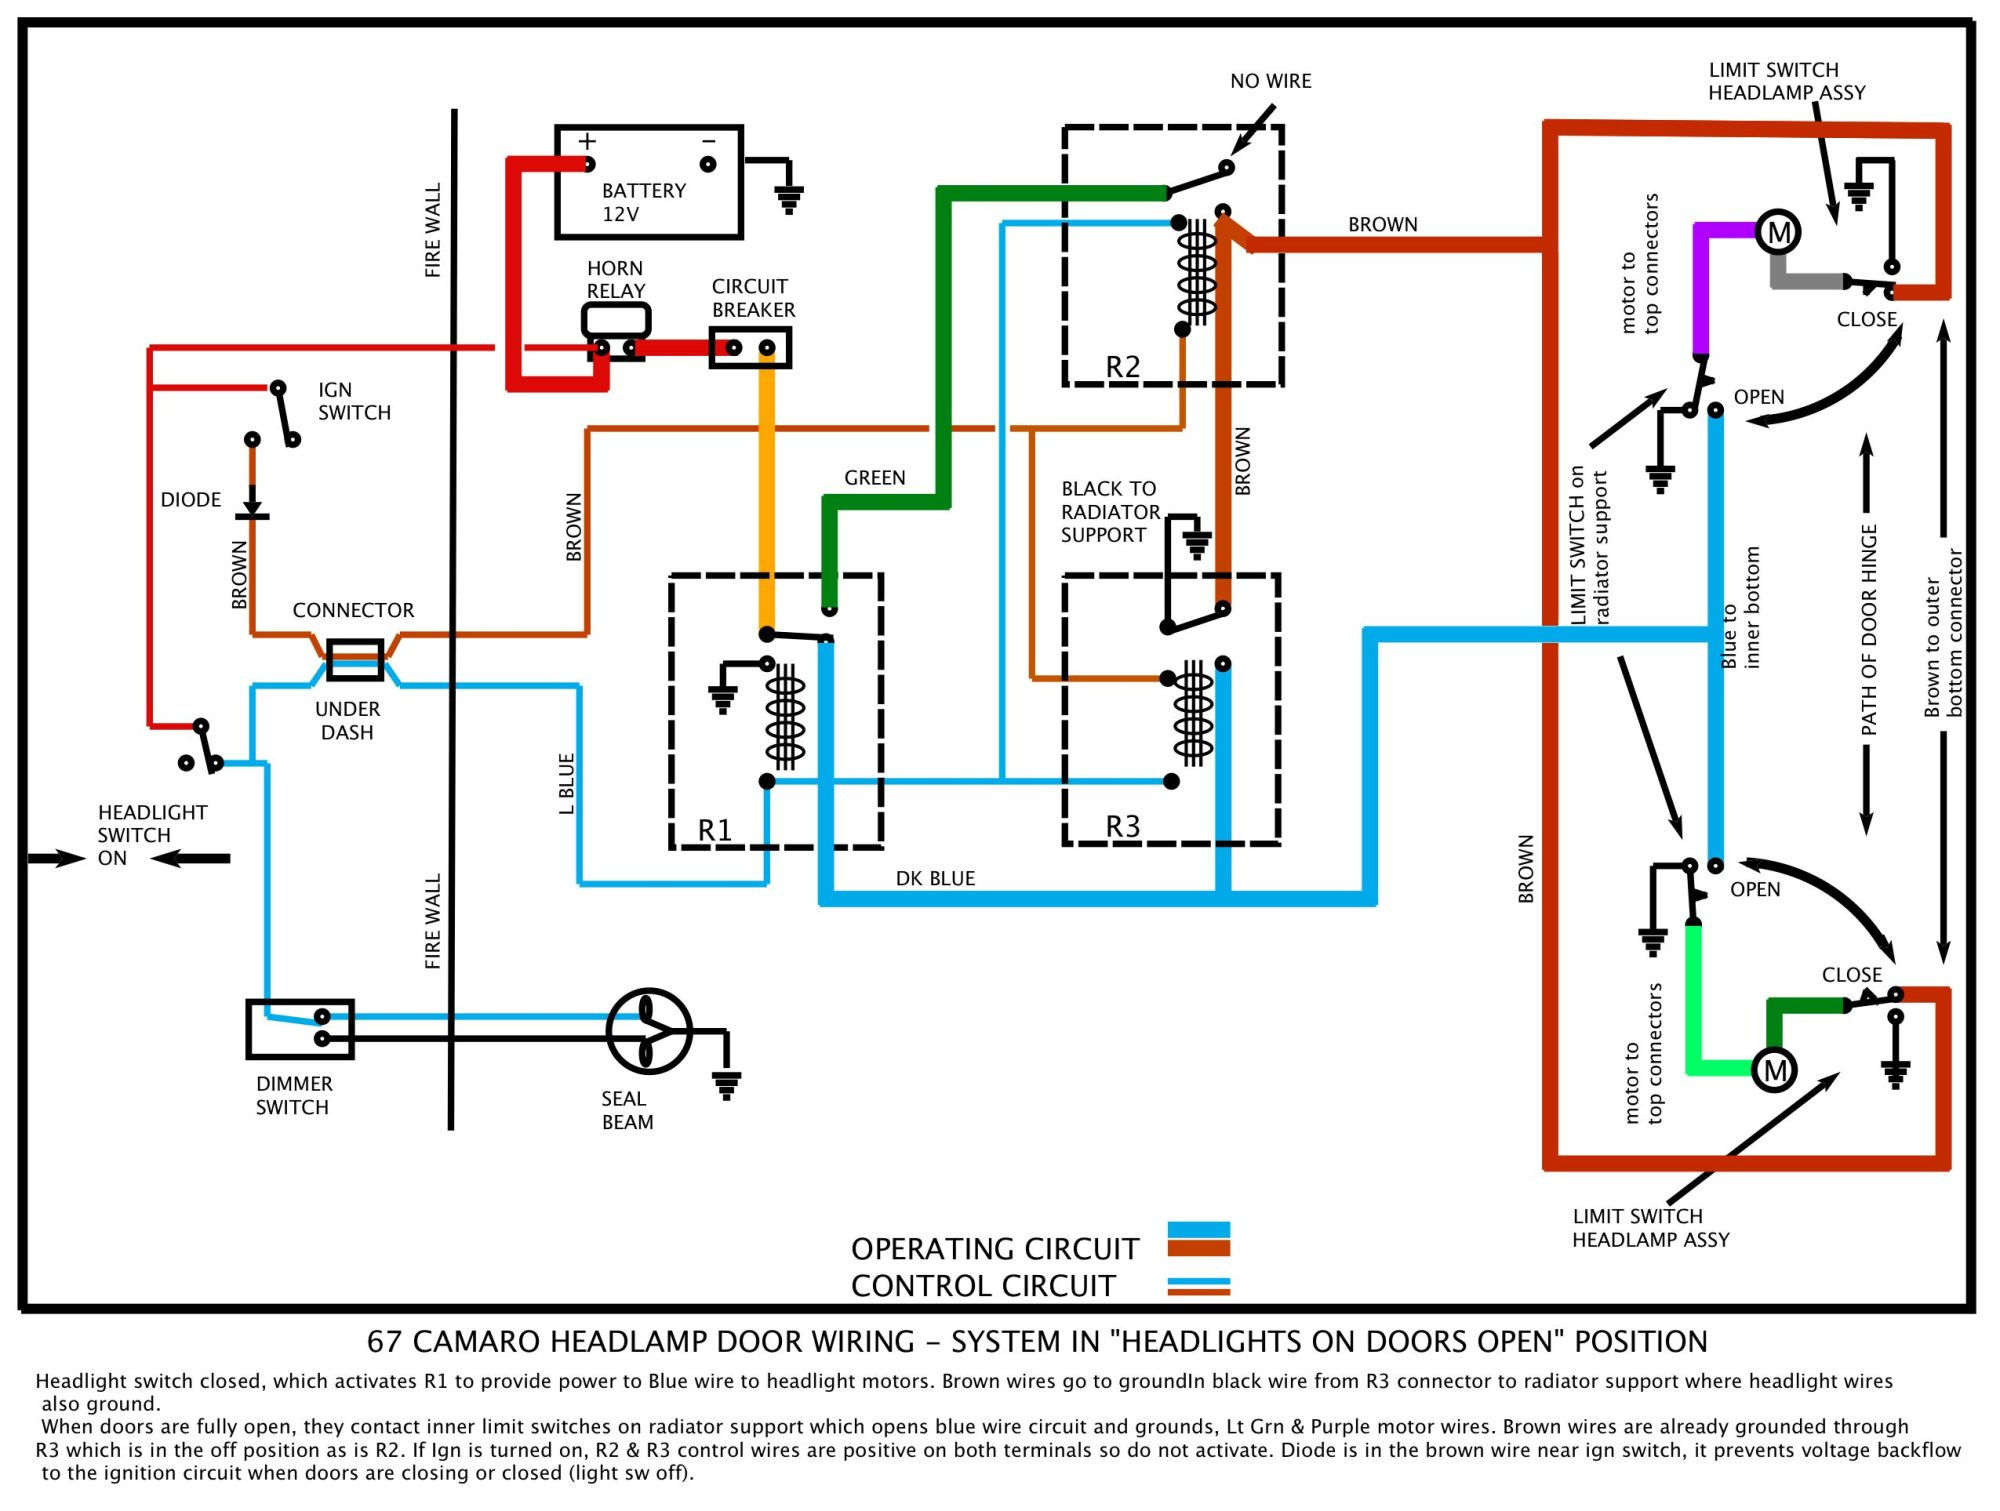 hight resolution of 67 camaro ignition switch wiring diagram just wiring data johnson ignition switch wiring diagram 67 camaro